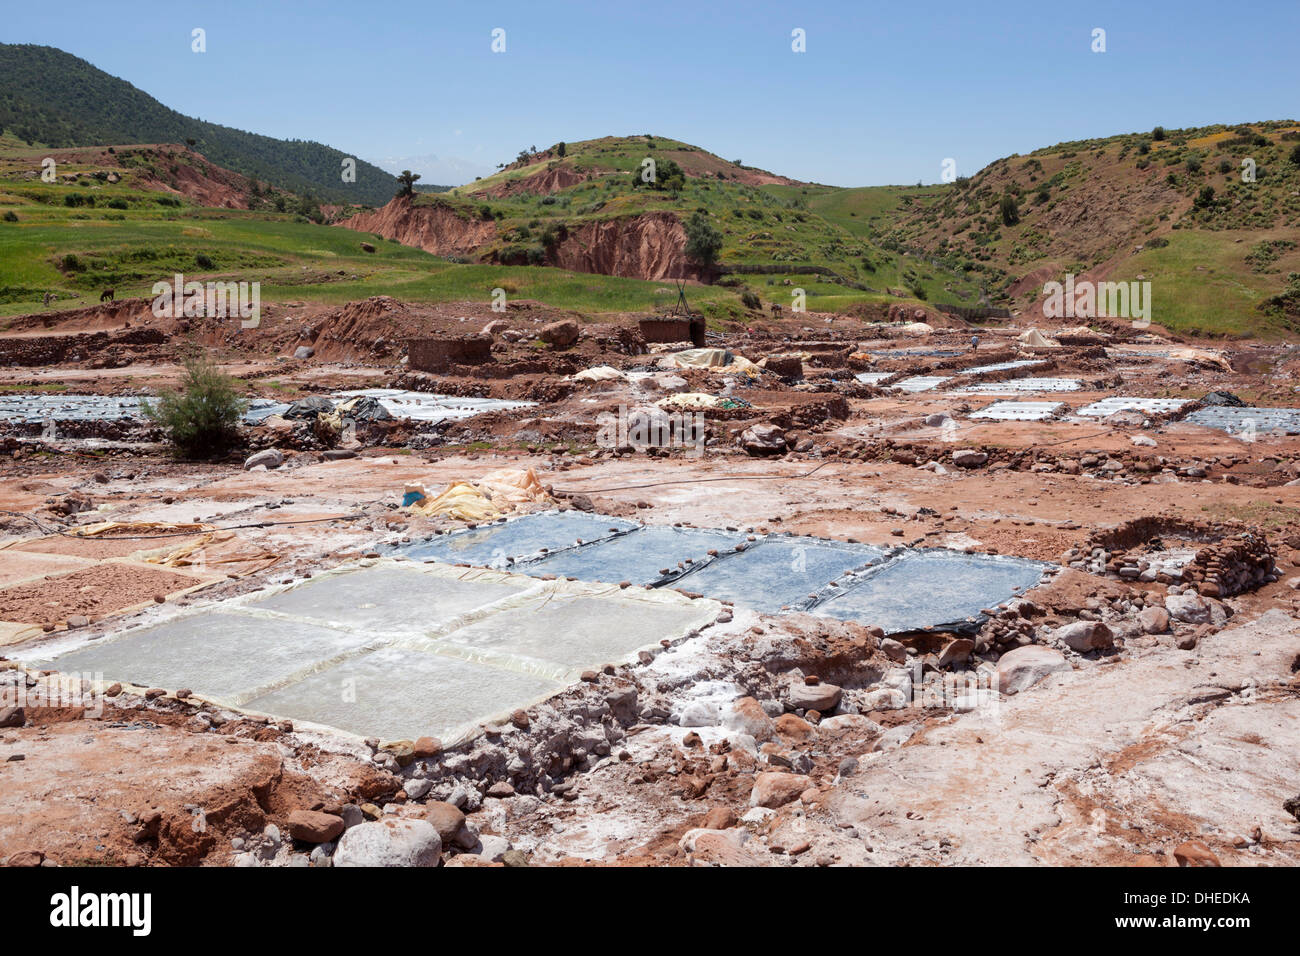 Salt evaporation ponds, Ourika Valley, Atlas Mountains, Morocco, North Africa, Africa - Stock Image